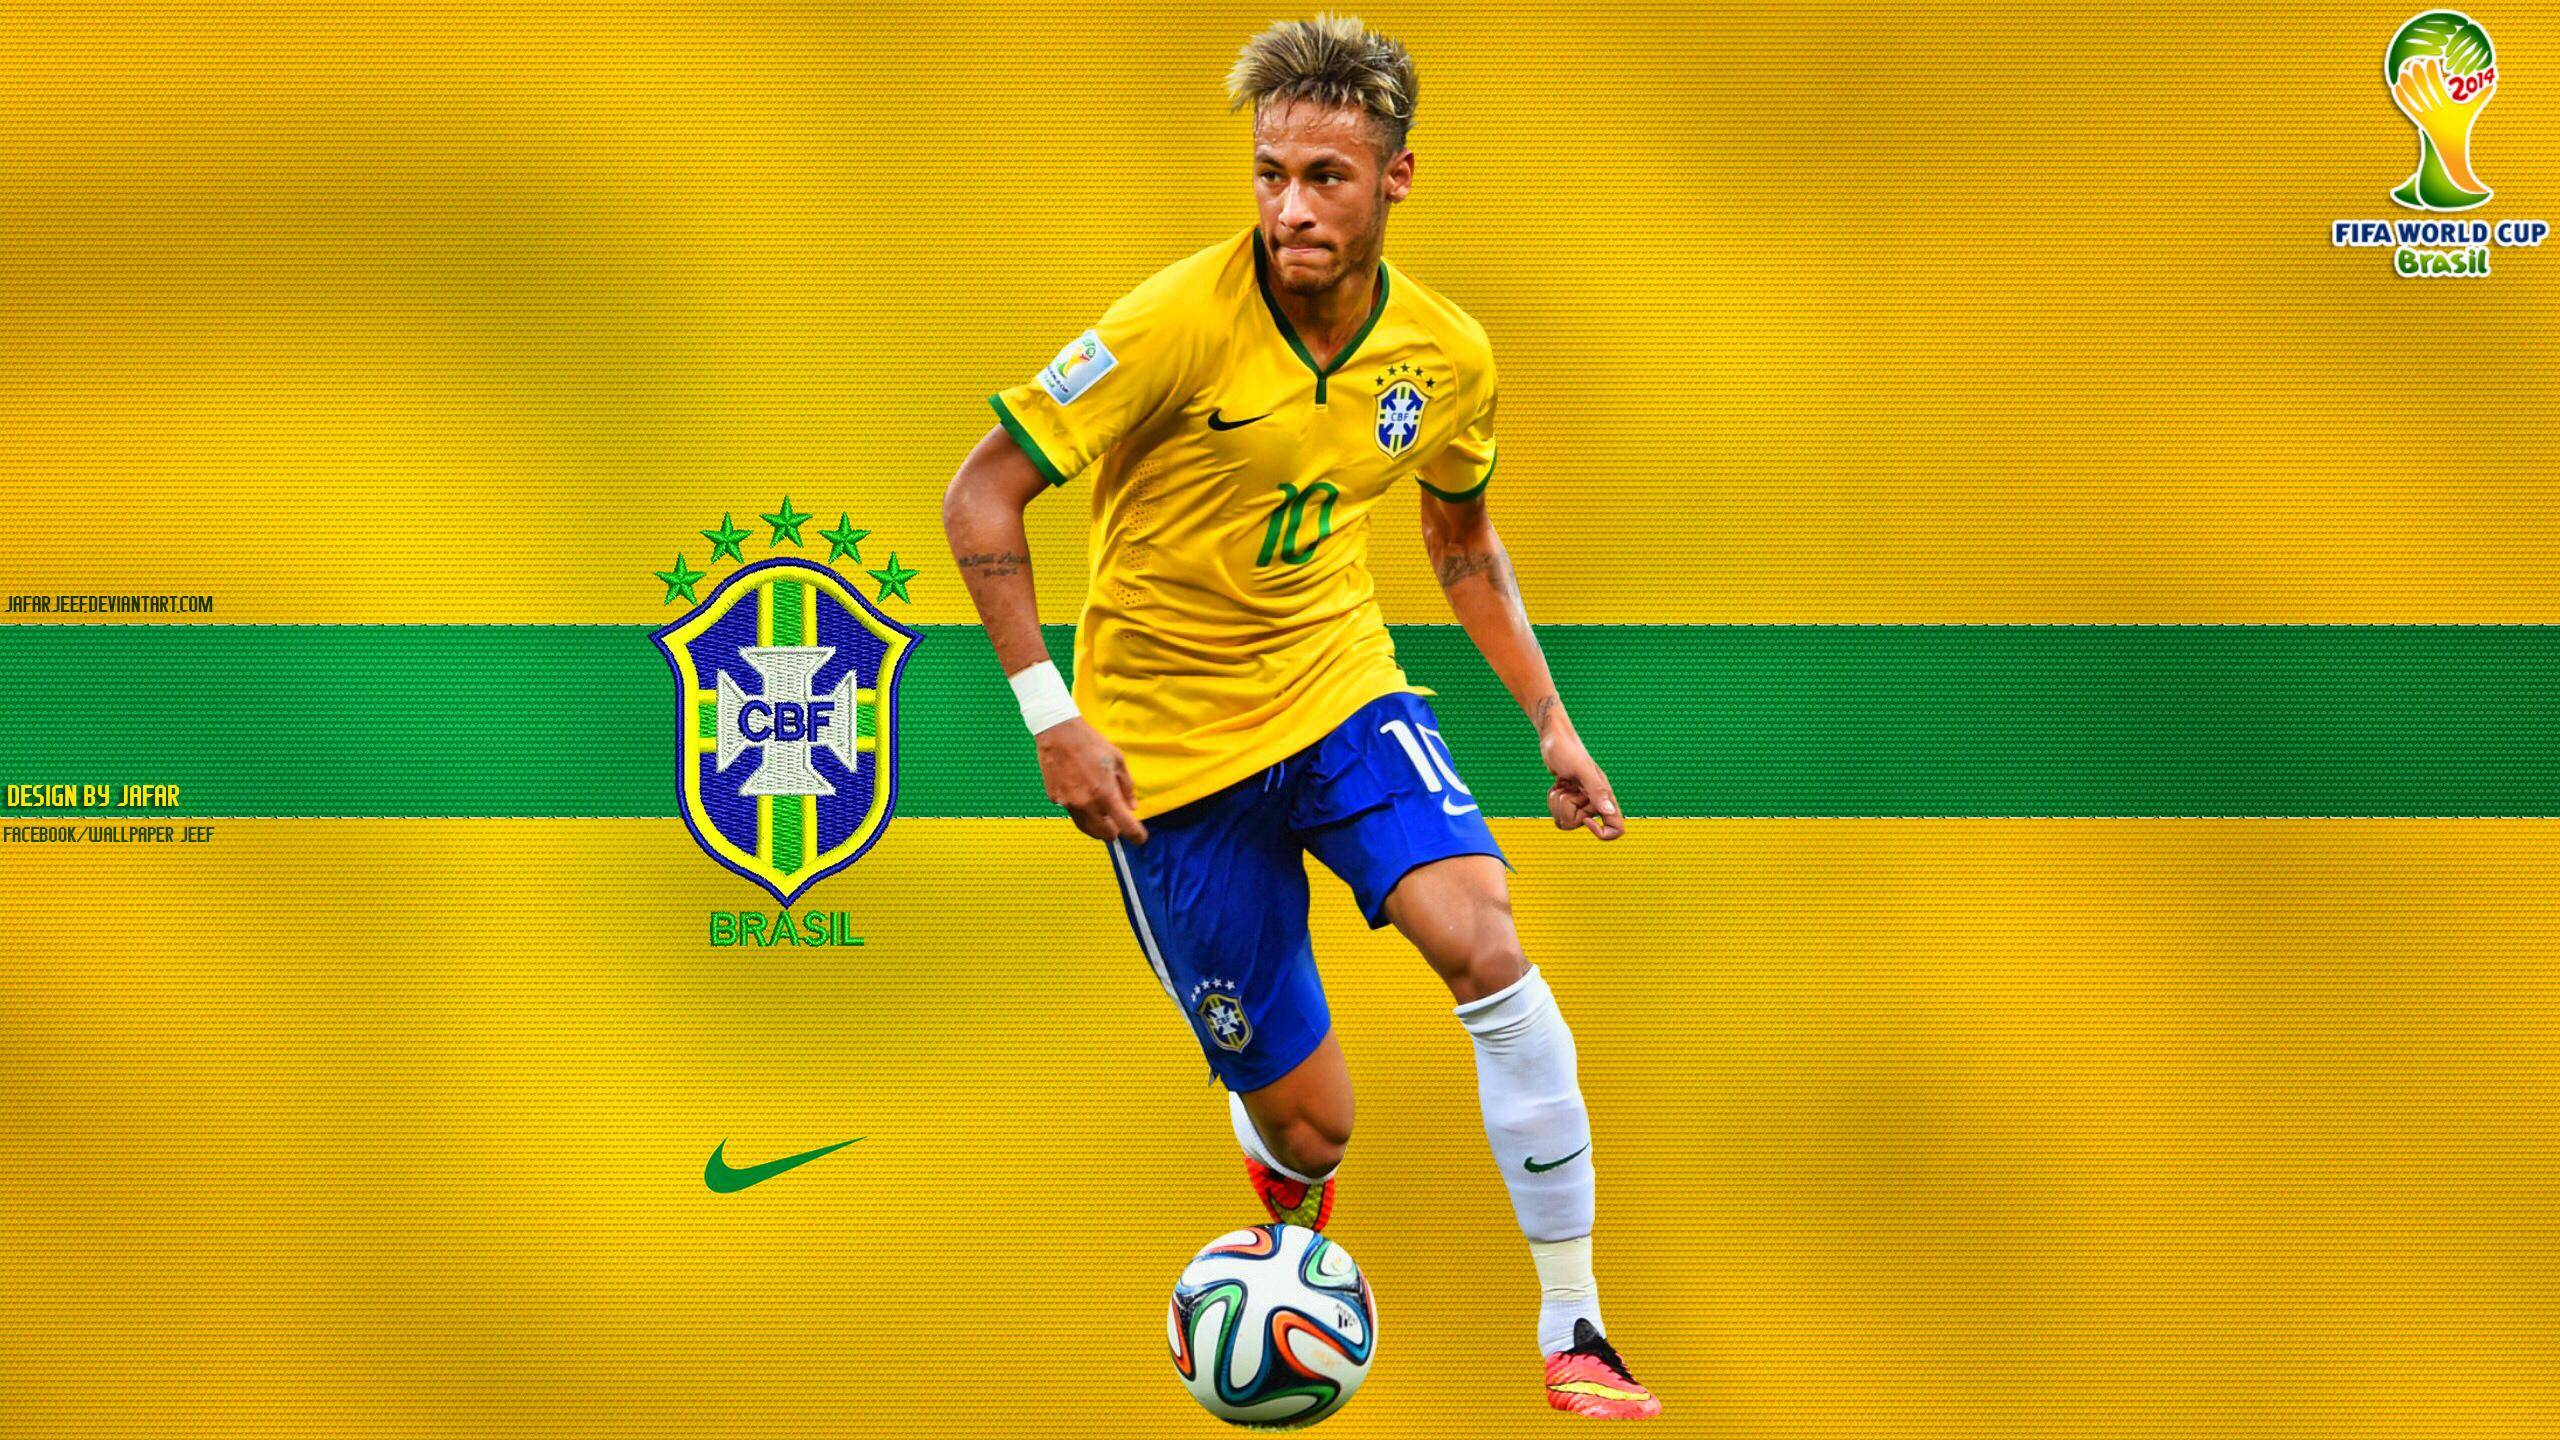 Wallpapers Of Neymar